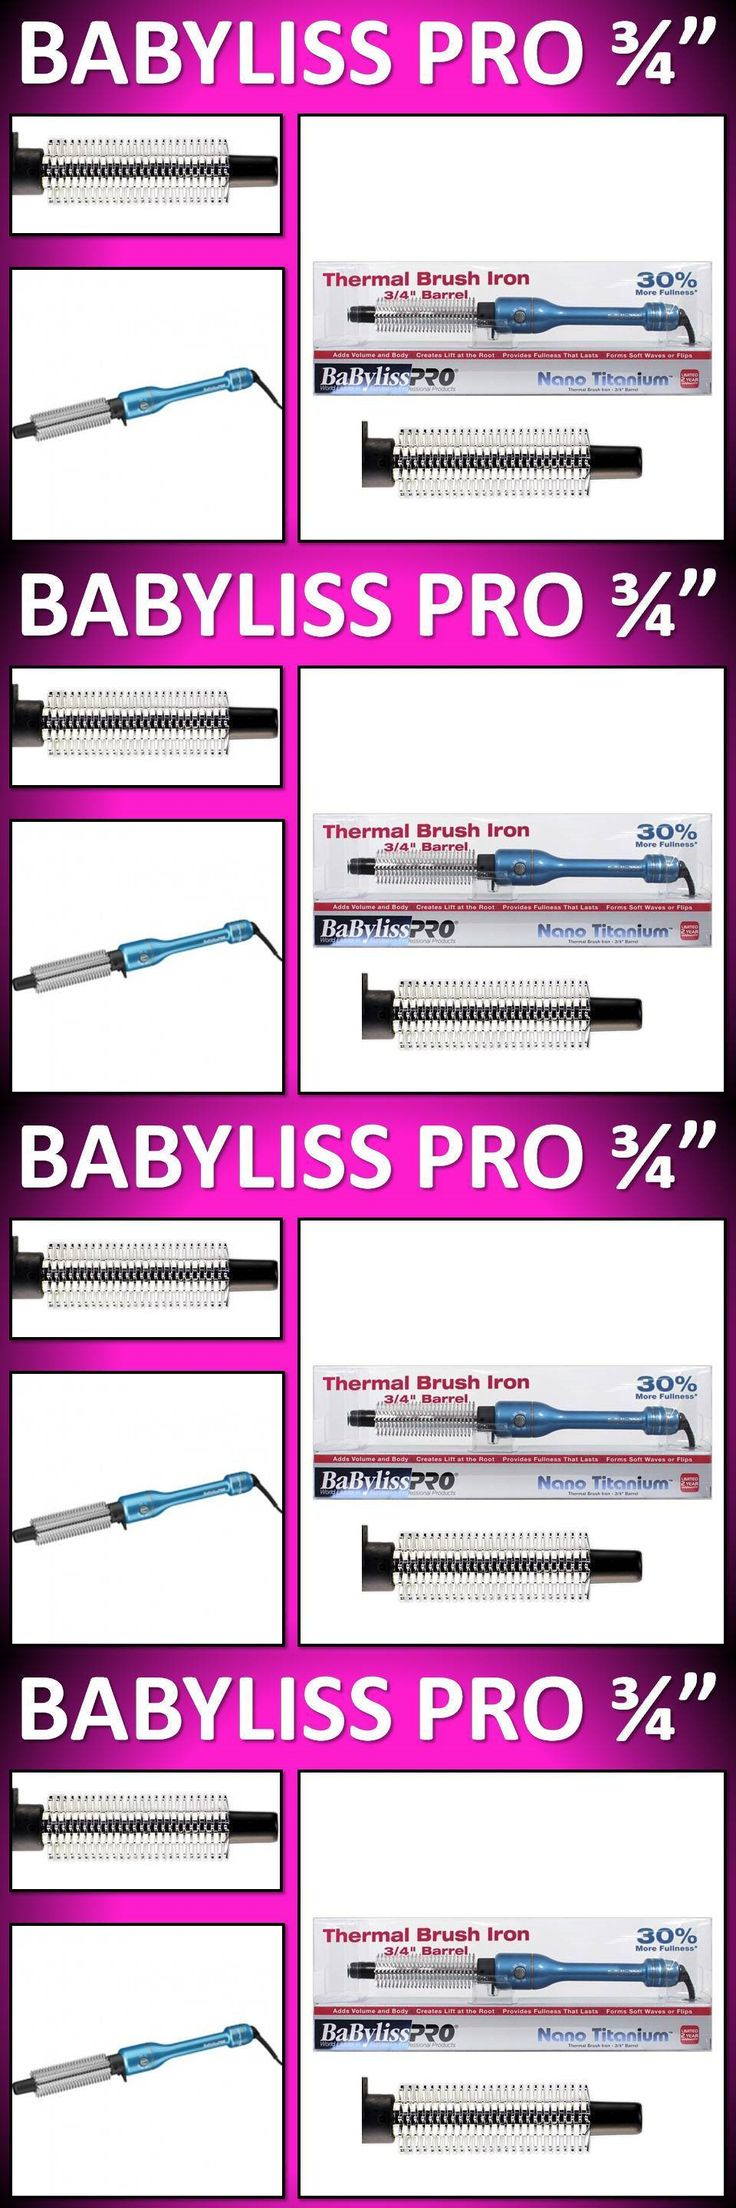 Straightening and Curling Irons: New!! Babyliss Pro Nano Titanium 3/4 Barrel Thermal Brush Iron Volume Amplifier -> BUY IT NOW ONLY: $38.46 on eBay!